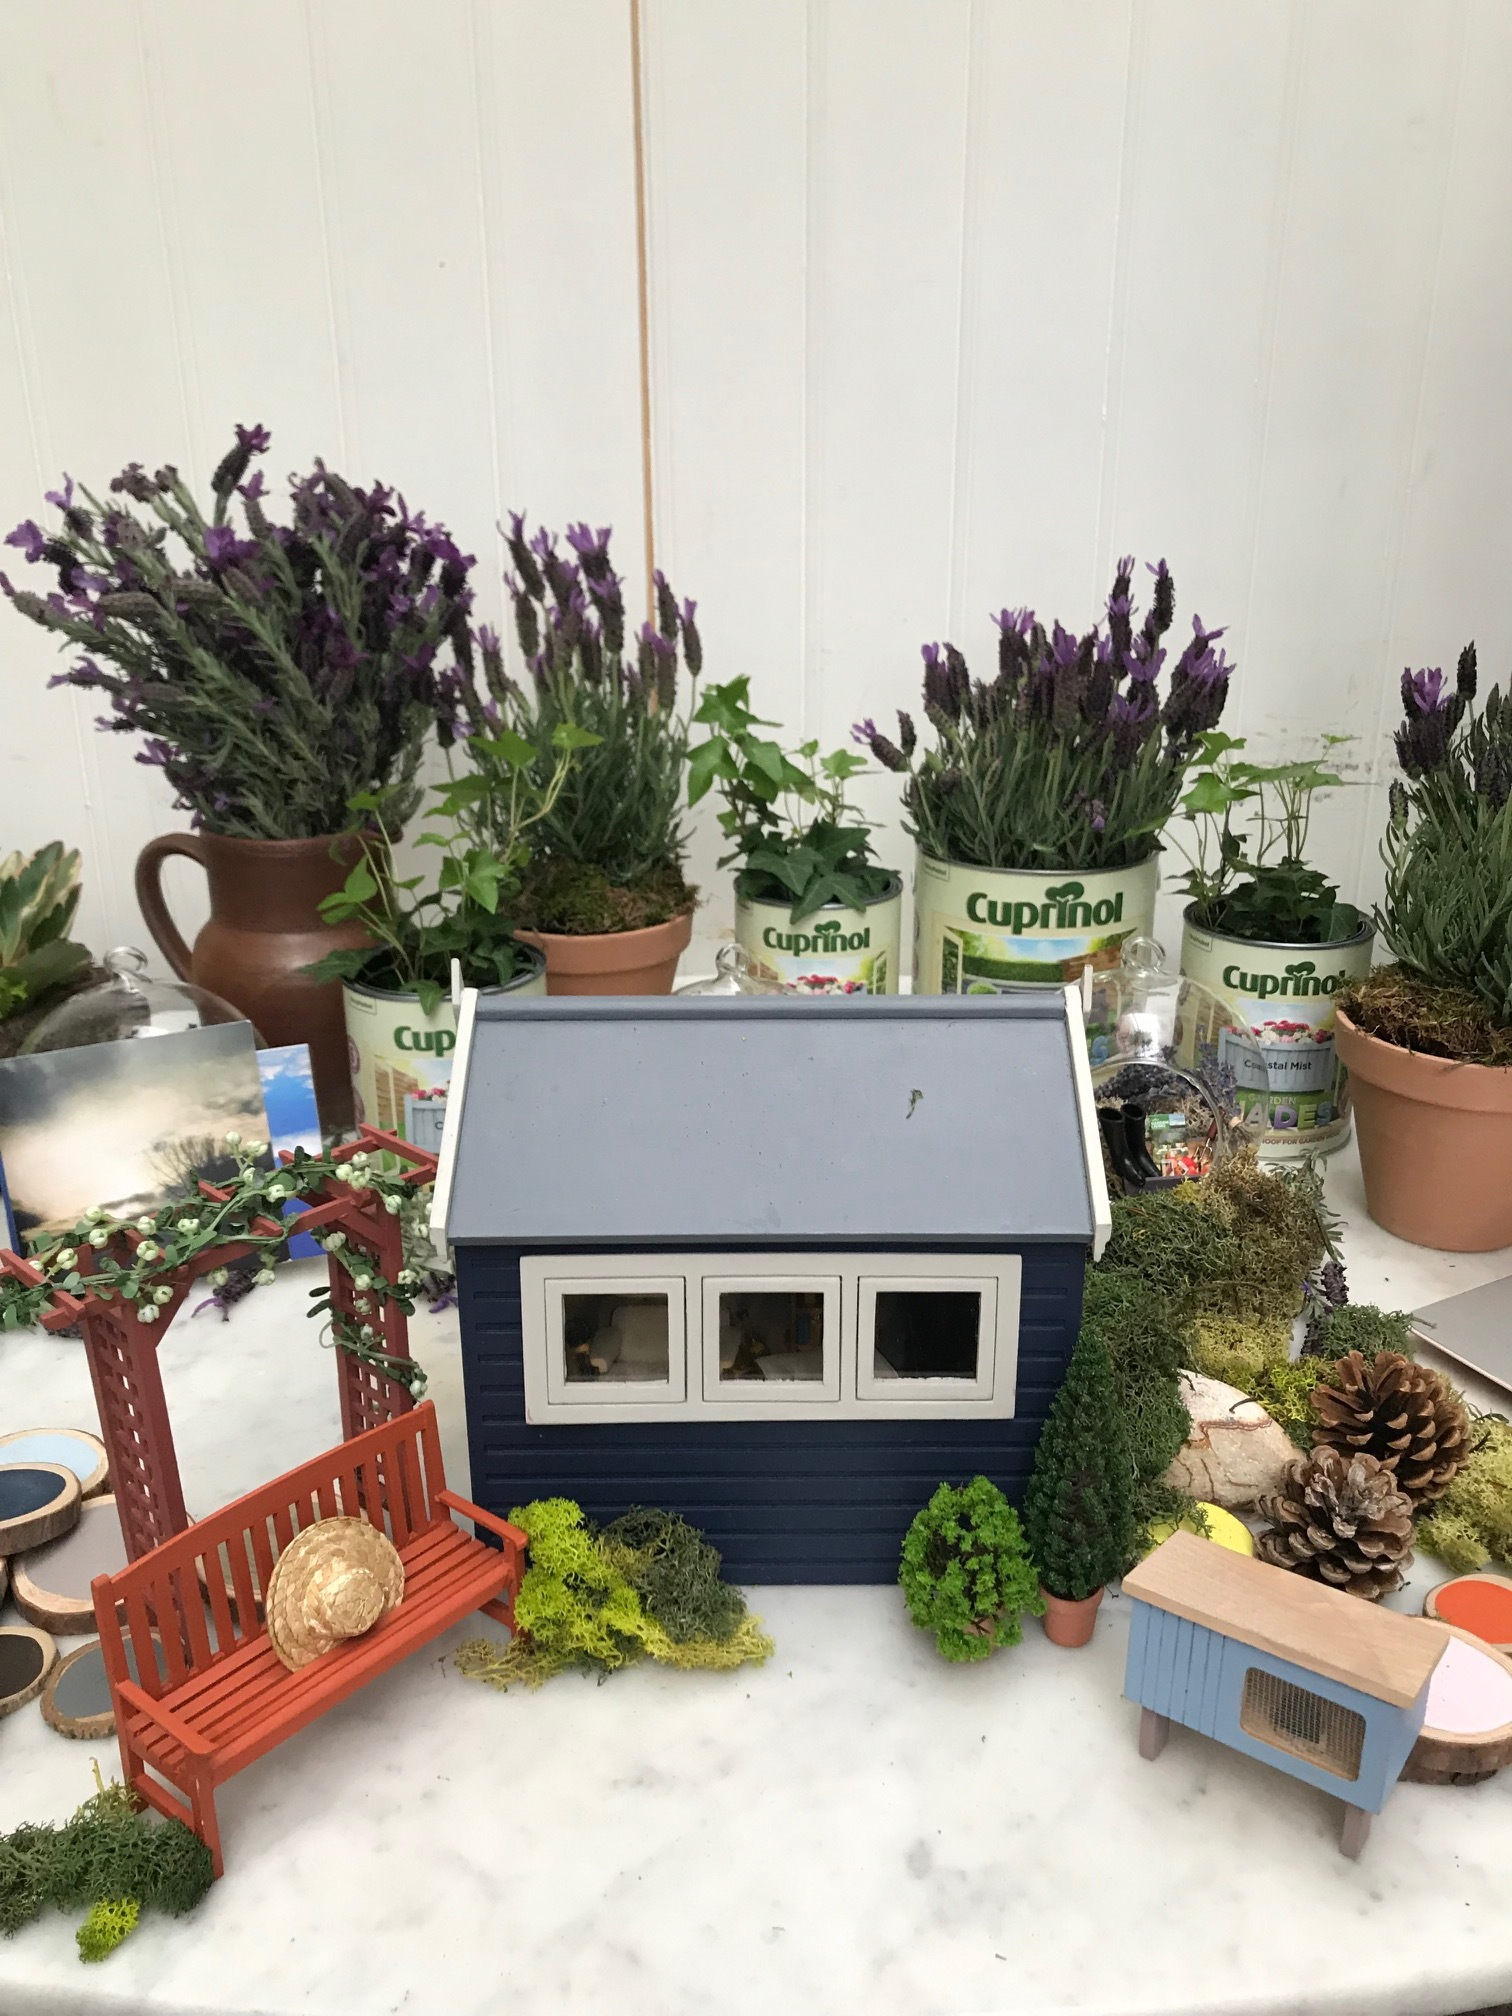 A cute miniature display